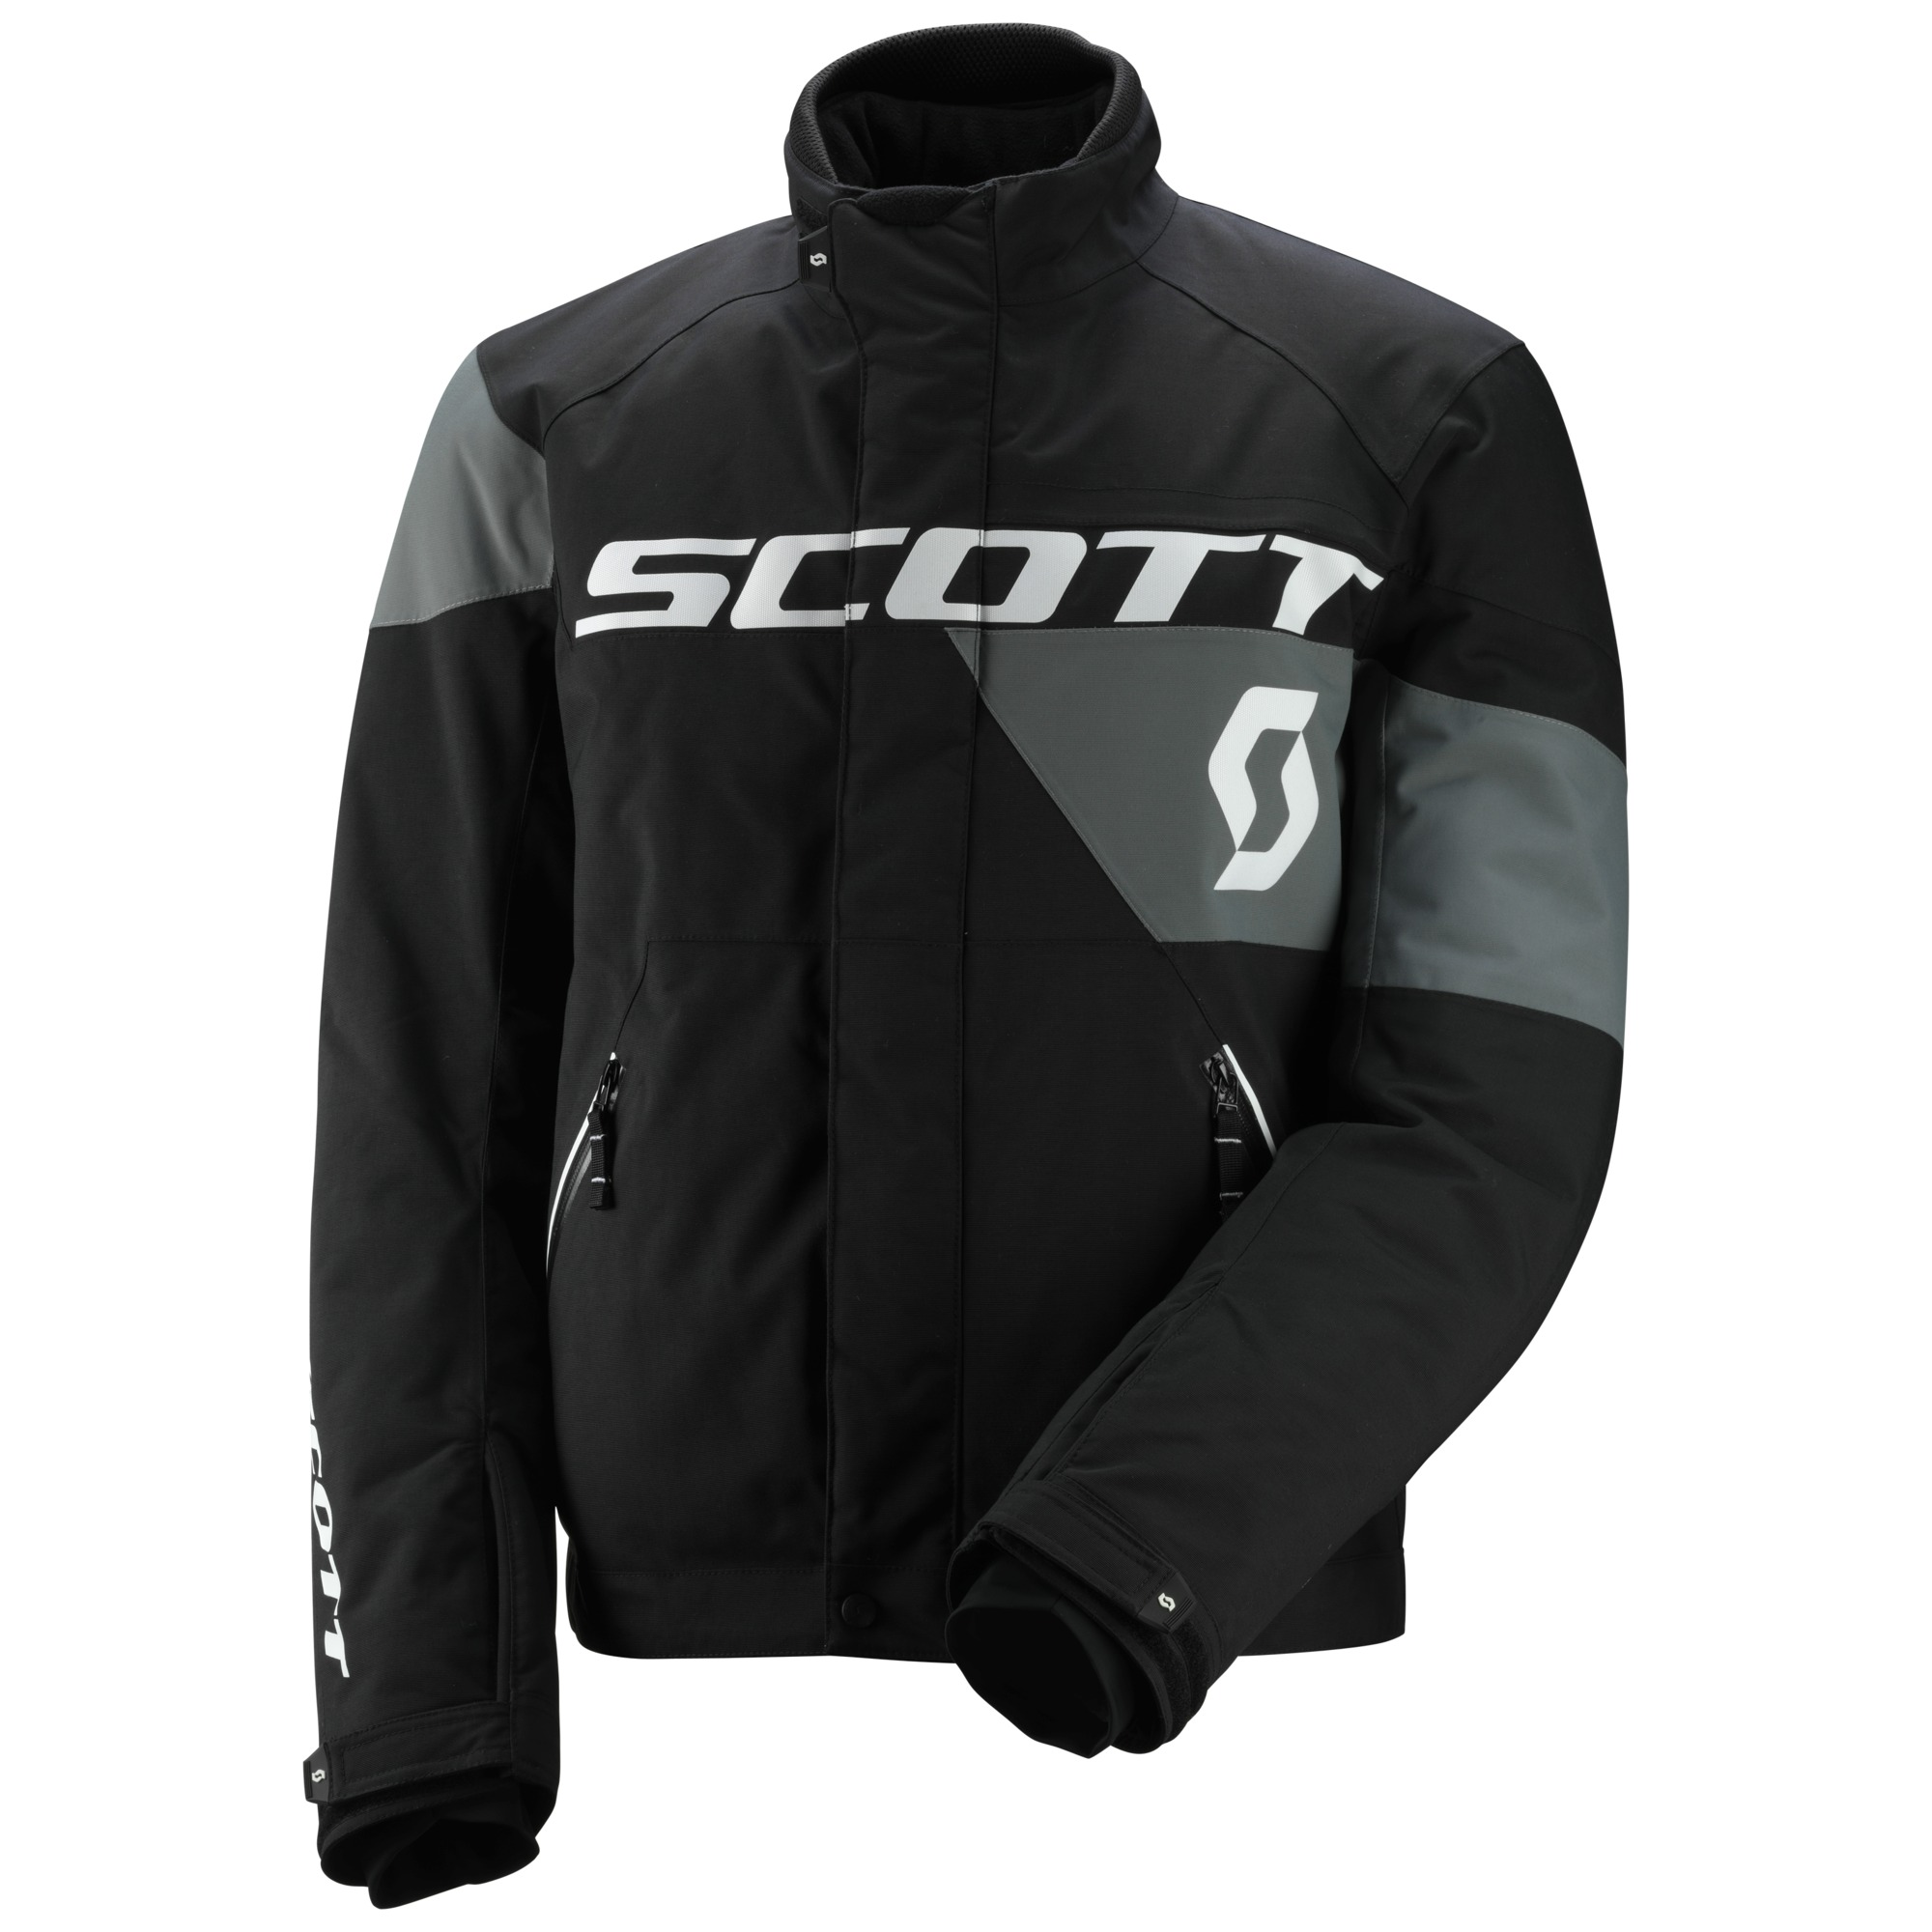 SCOTT Team Women's Jacket